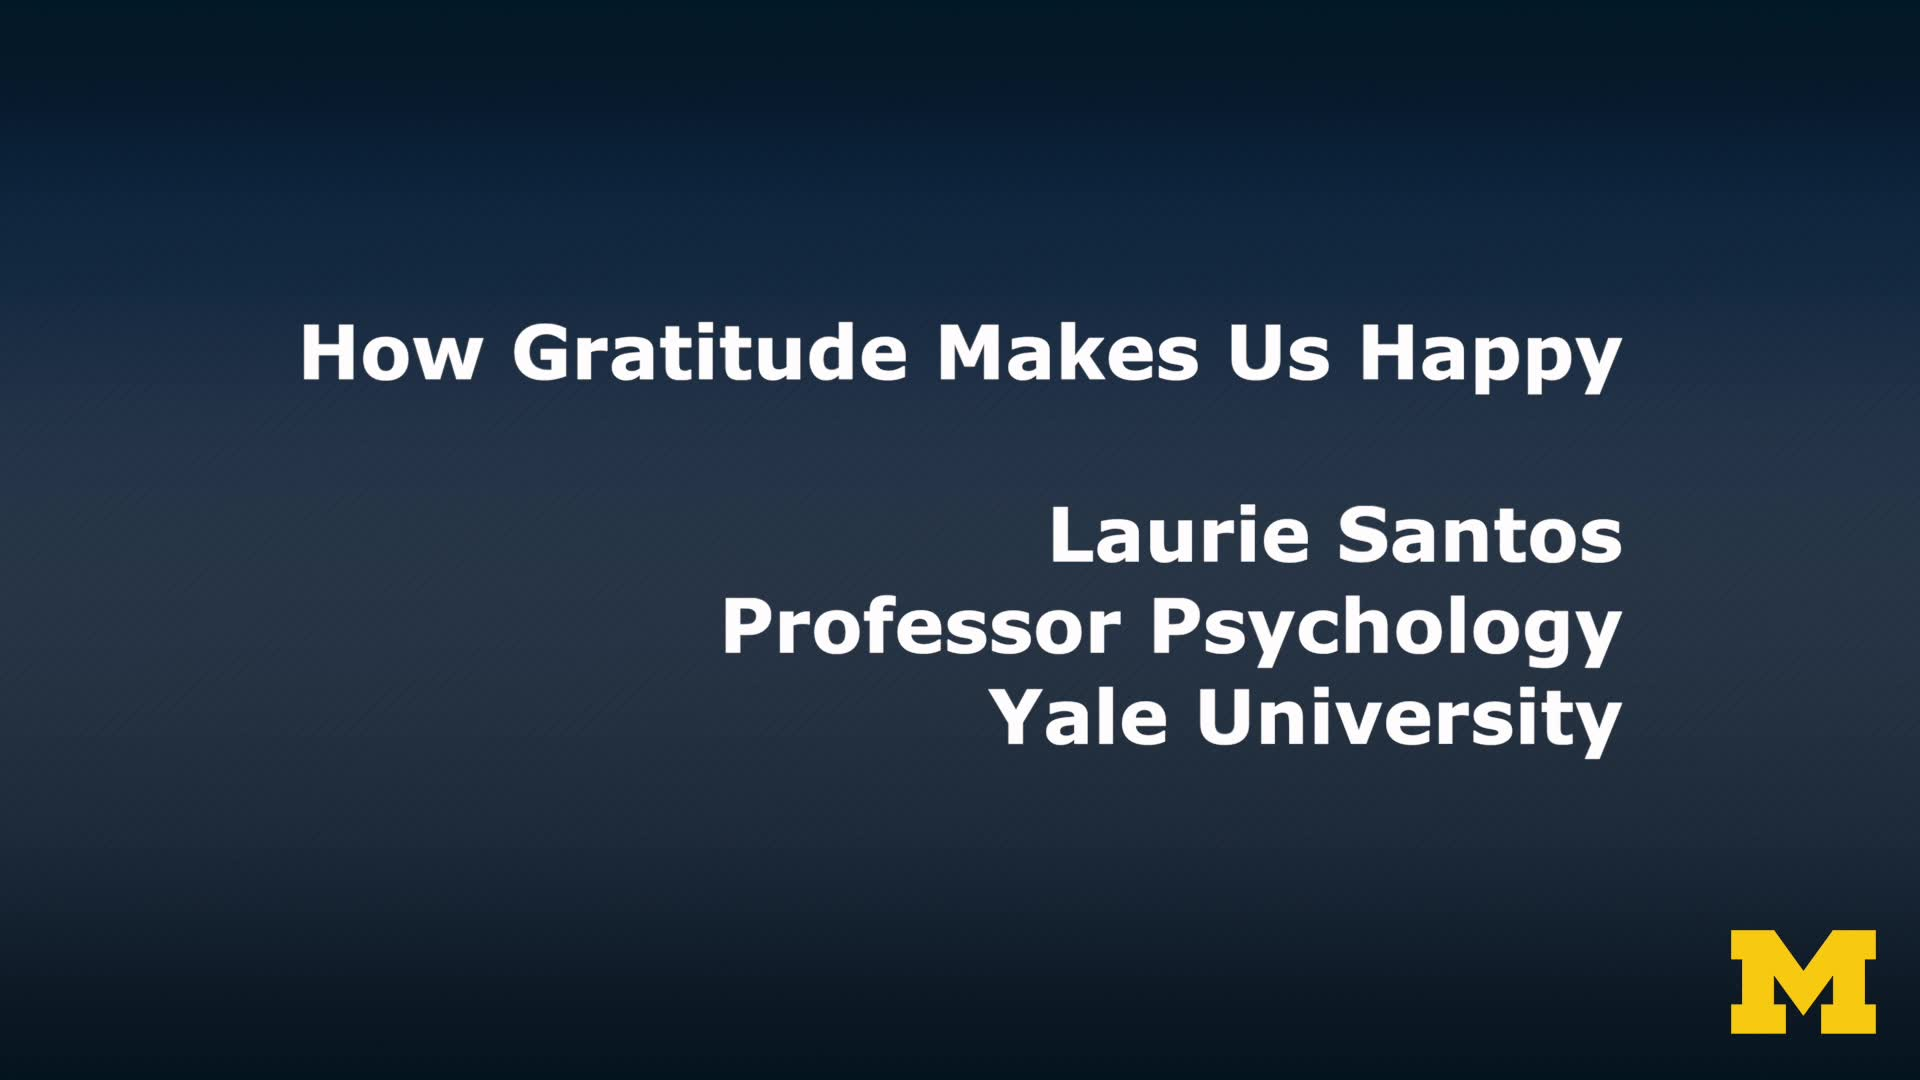 Why Gratitude Makes Us Happy